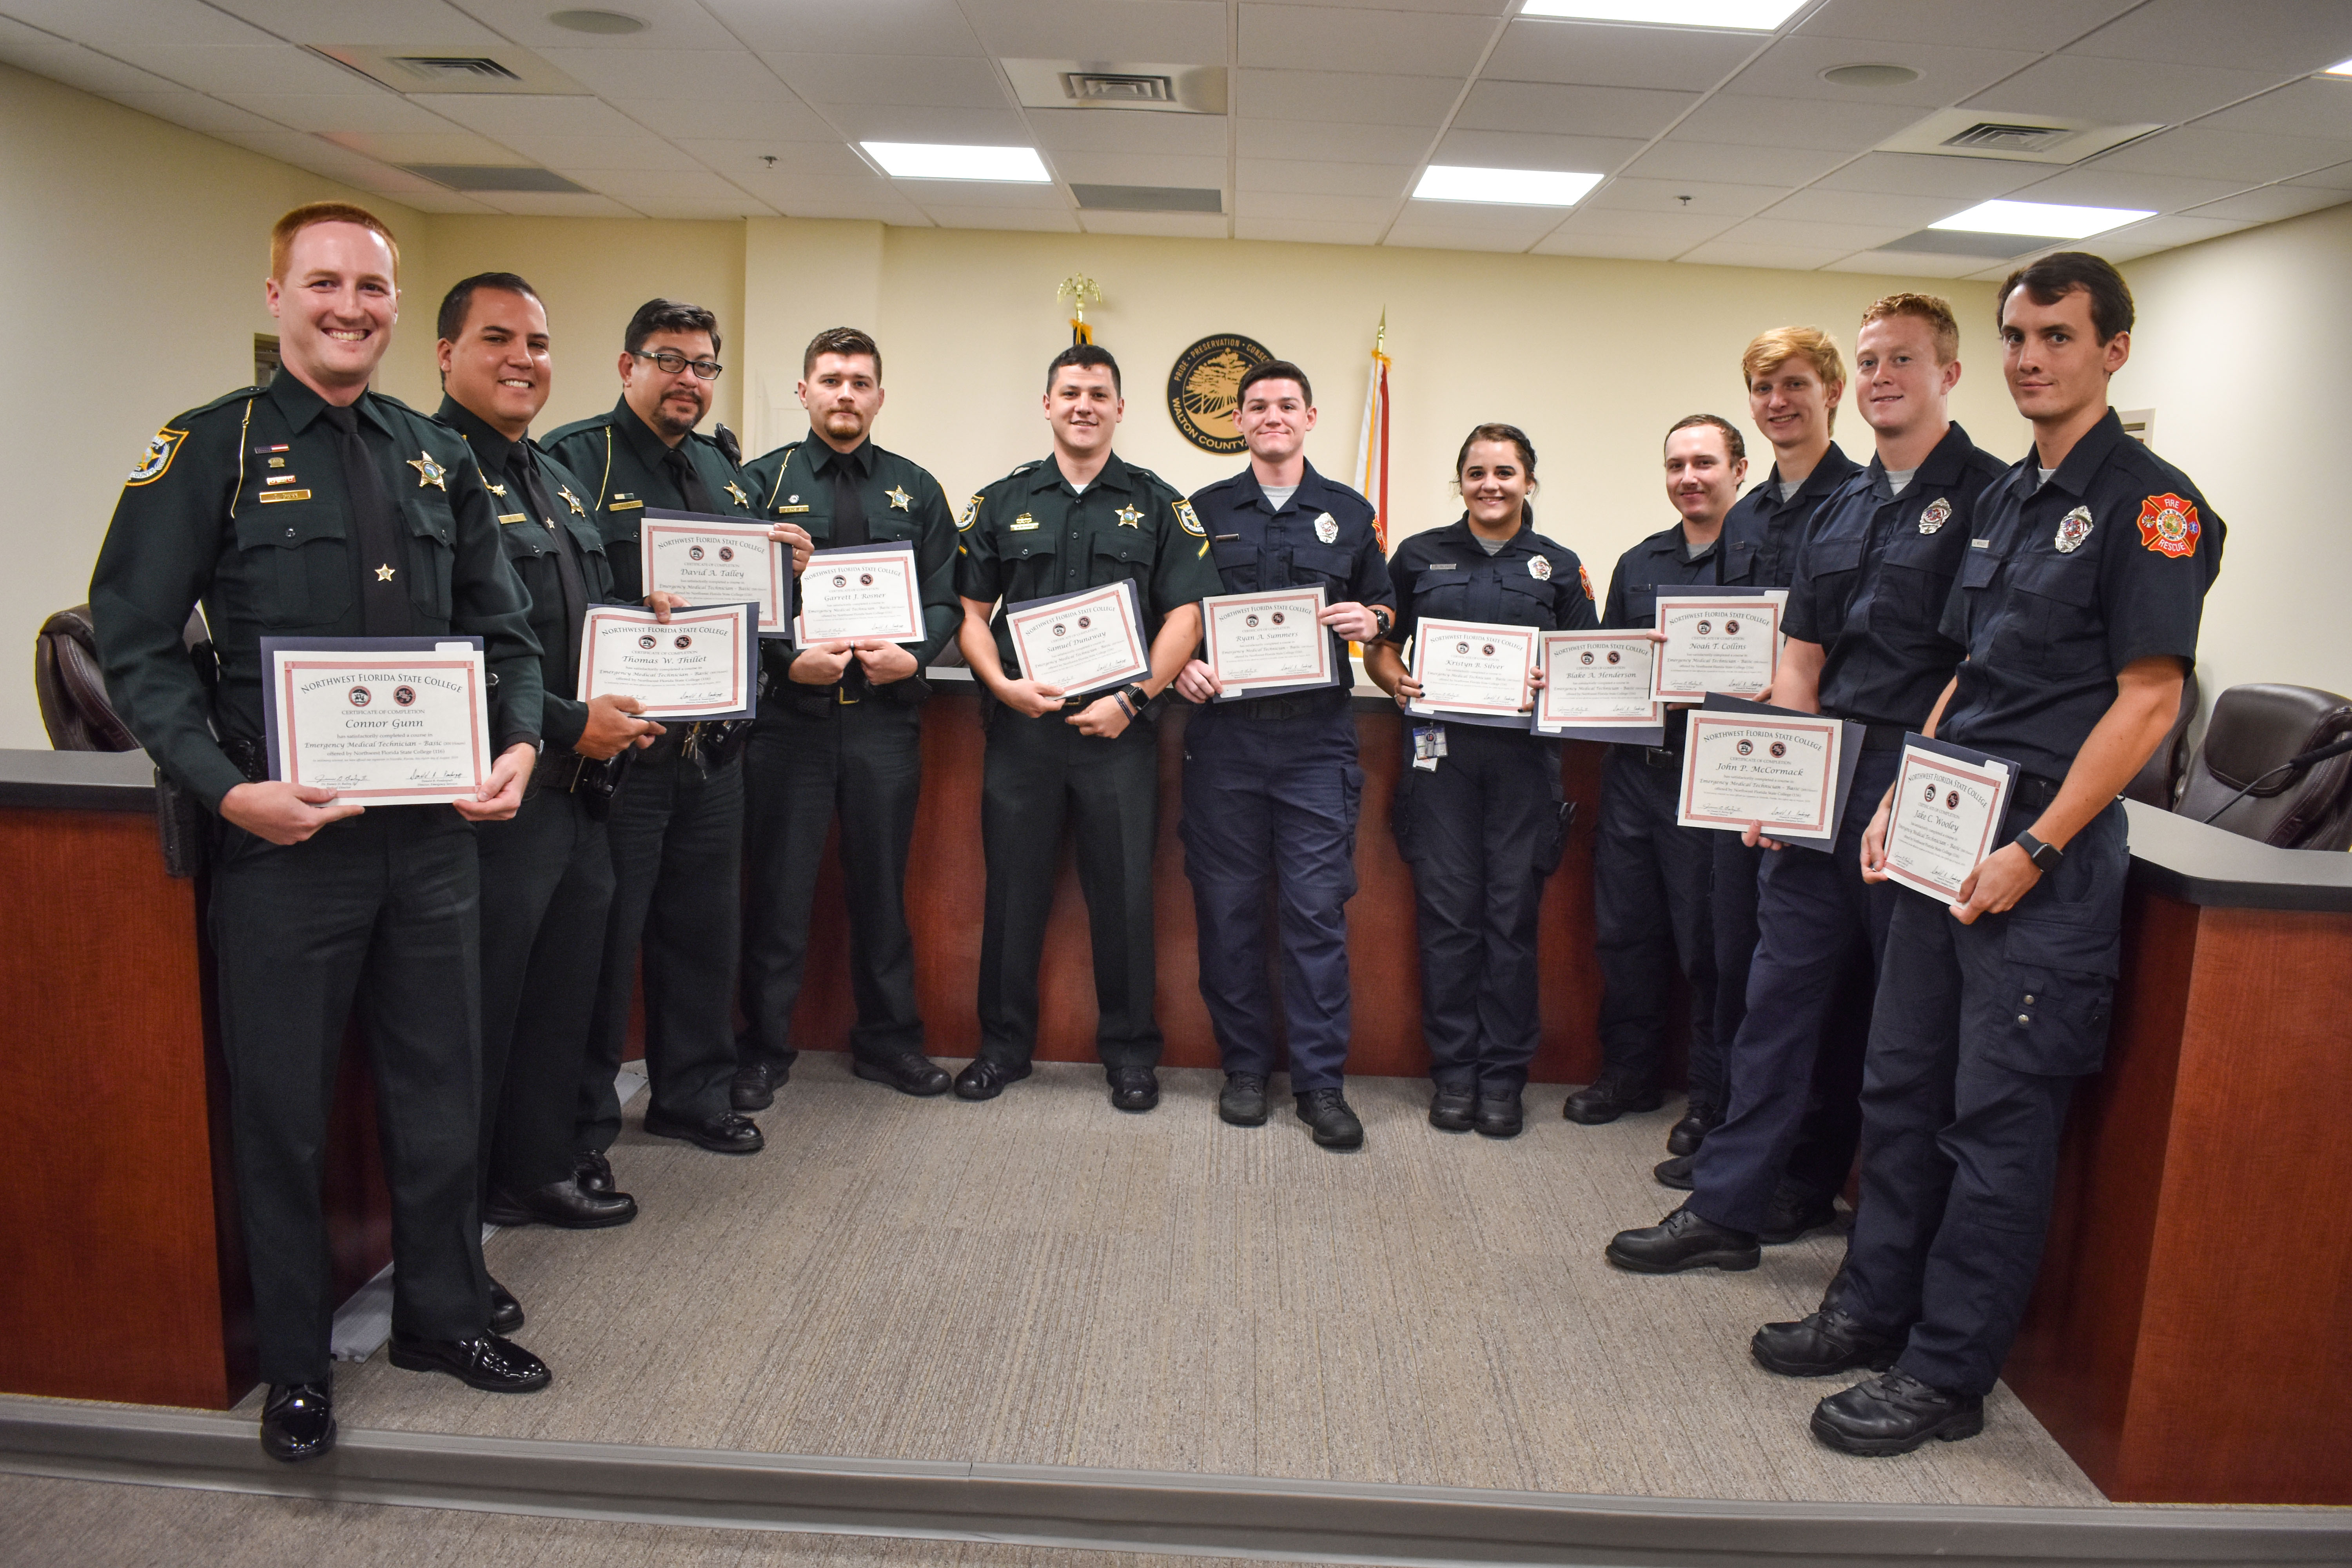 WCSO DEPUTIES AND FIREFIGHTERS GRADUATE FROM EMT SCHOOL